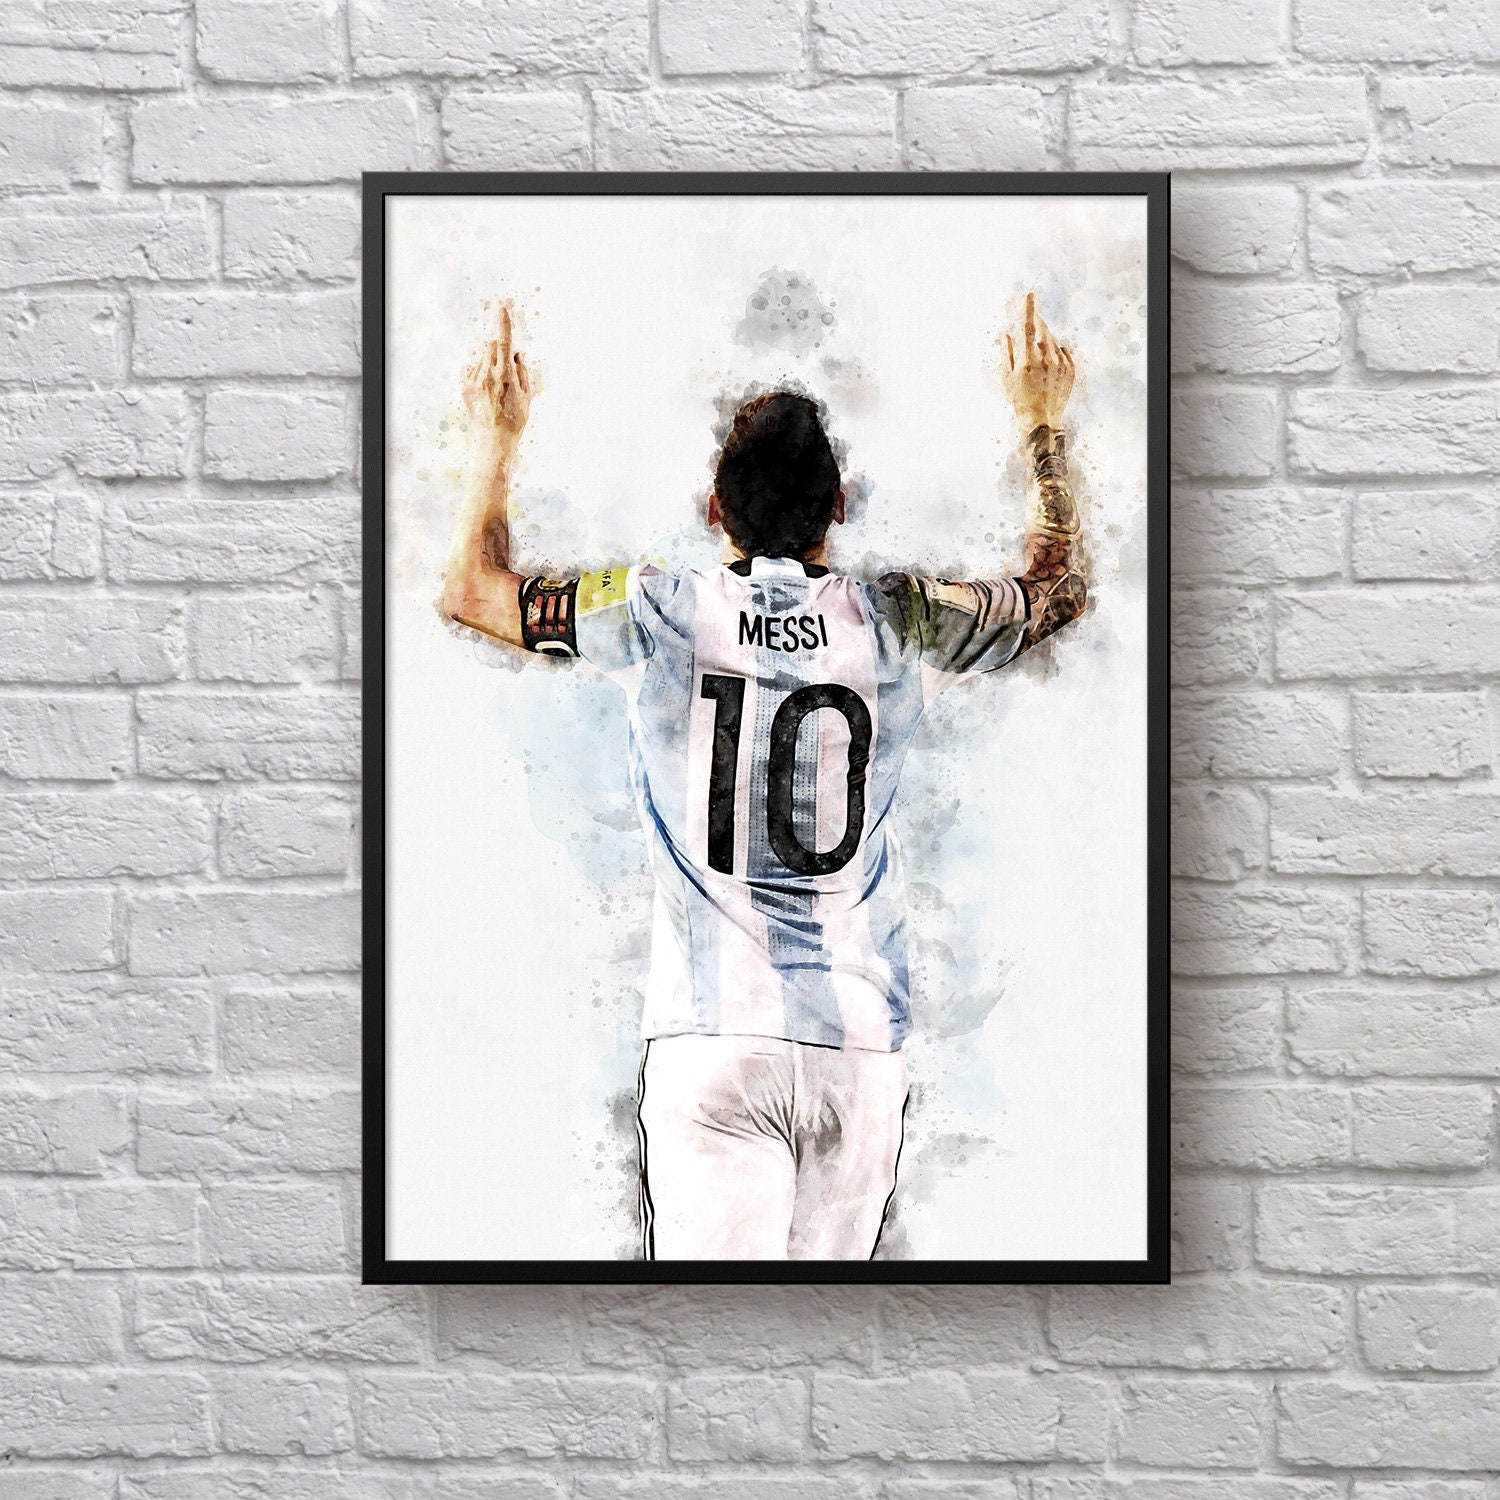 Messi Poster, Argentine National Football Team, Football Fan Gift, 2018